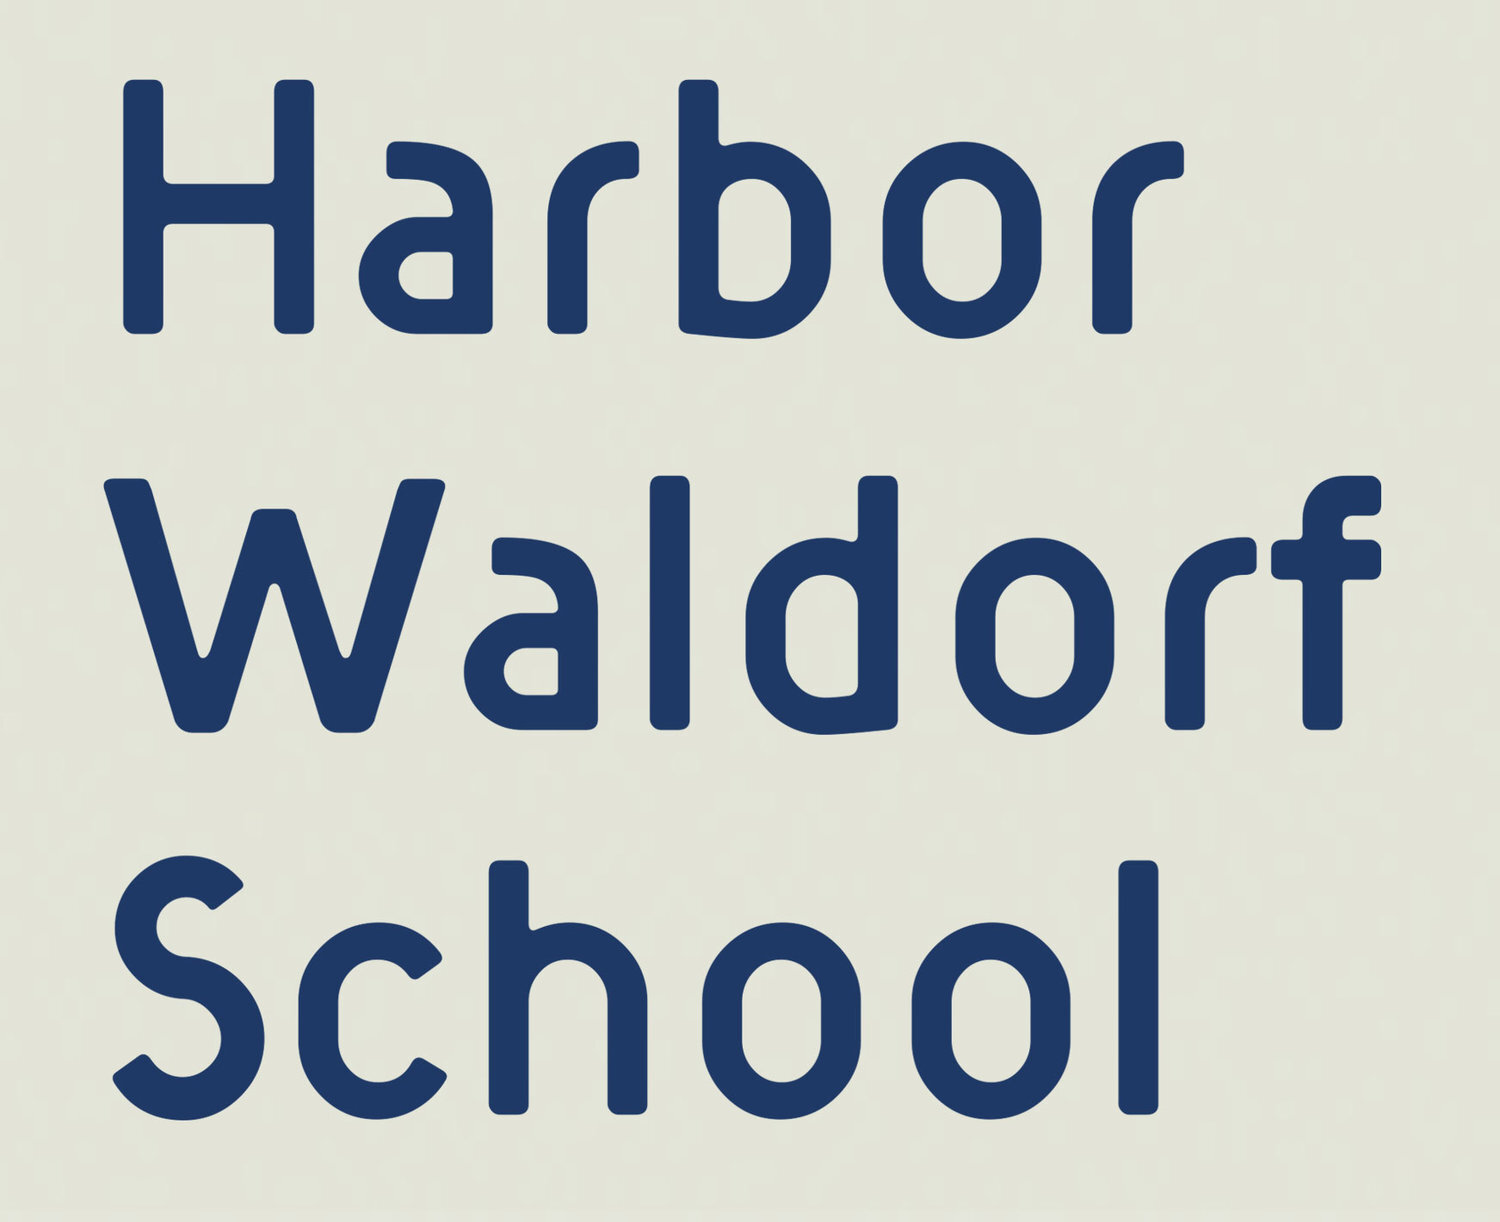 Harbor Waldorf School